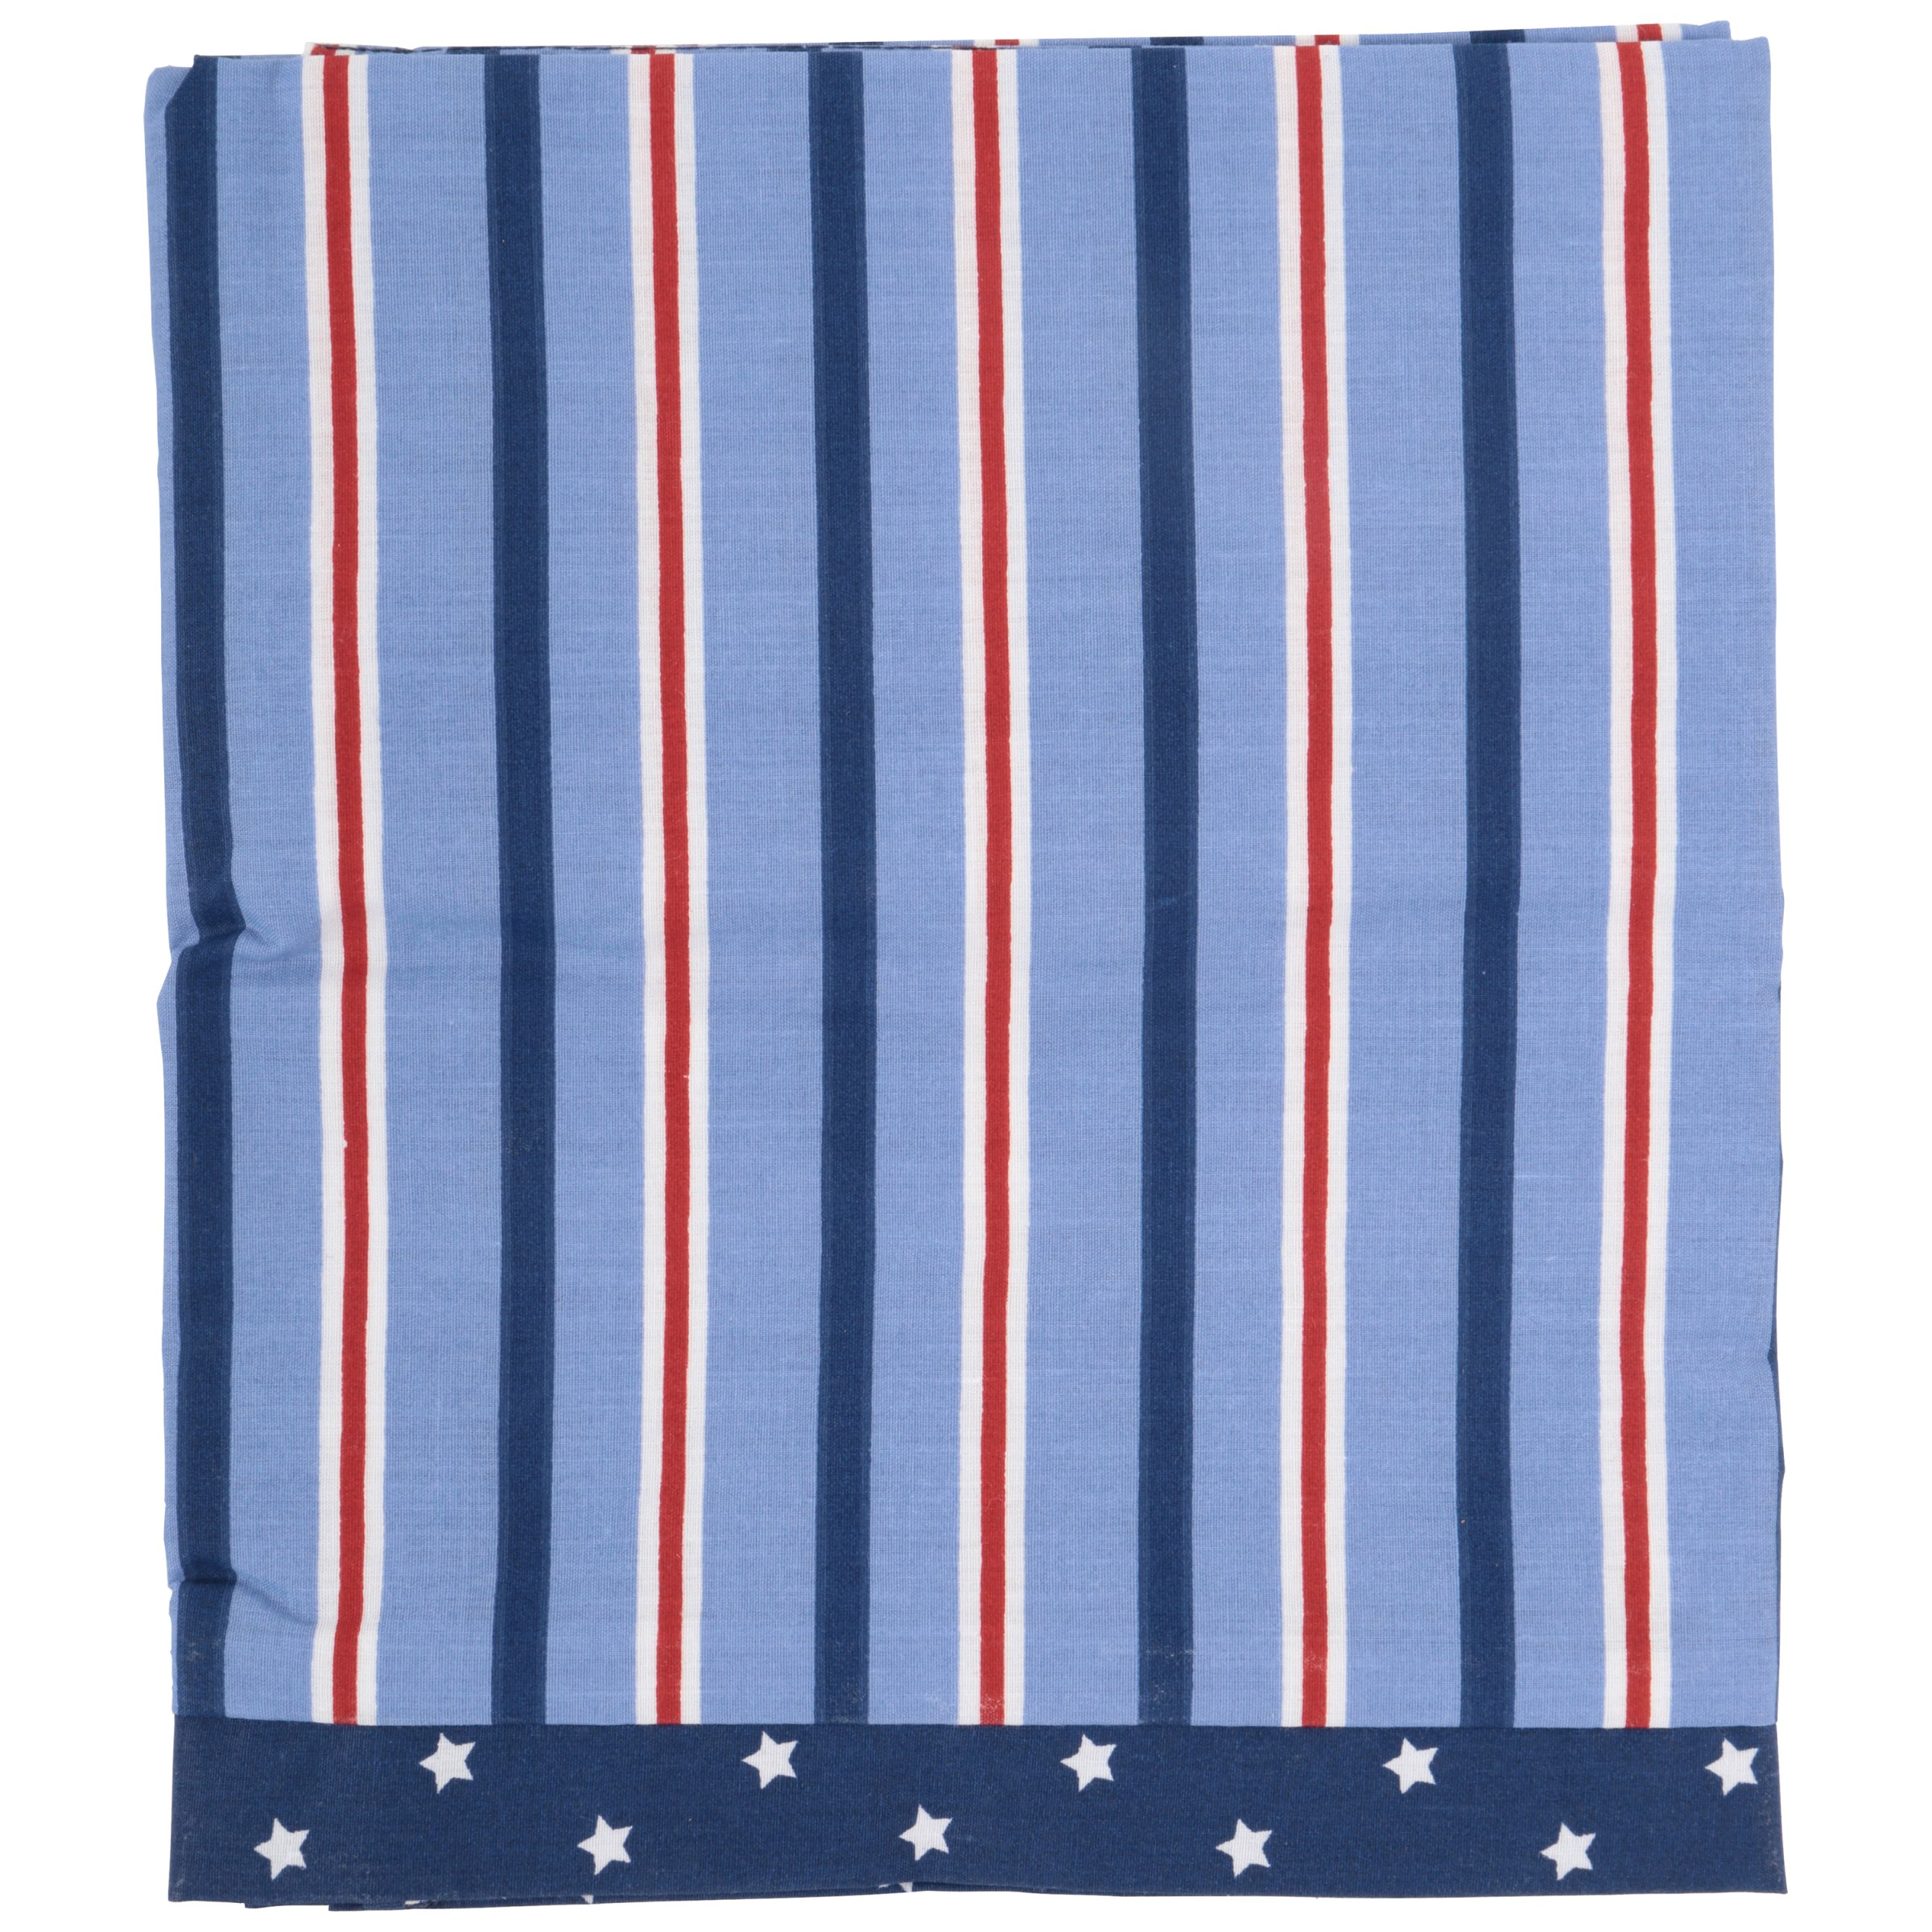 Bedtime Originals™ Sail Away Collection Valance